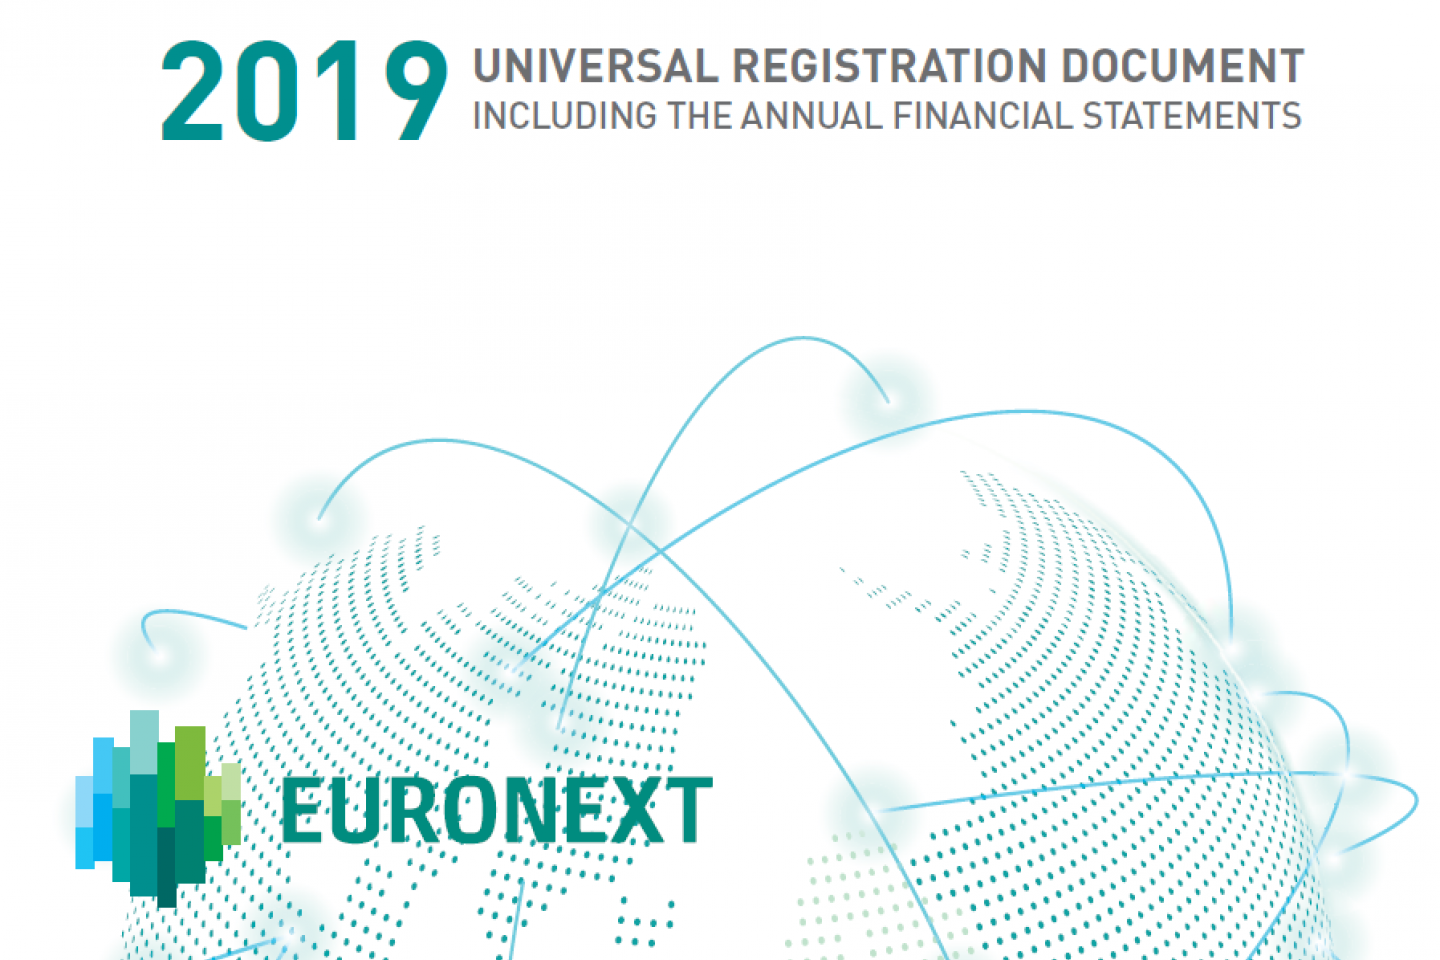 2019 universal registration document